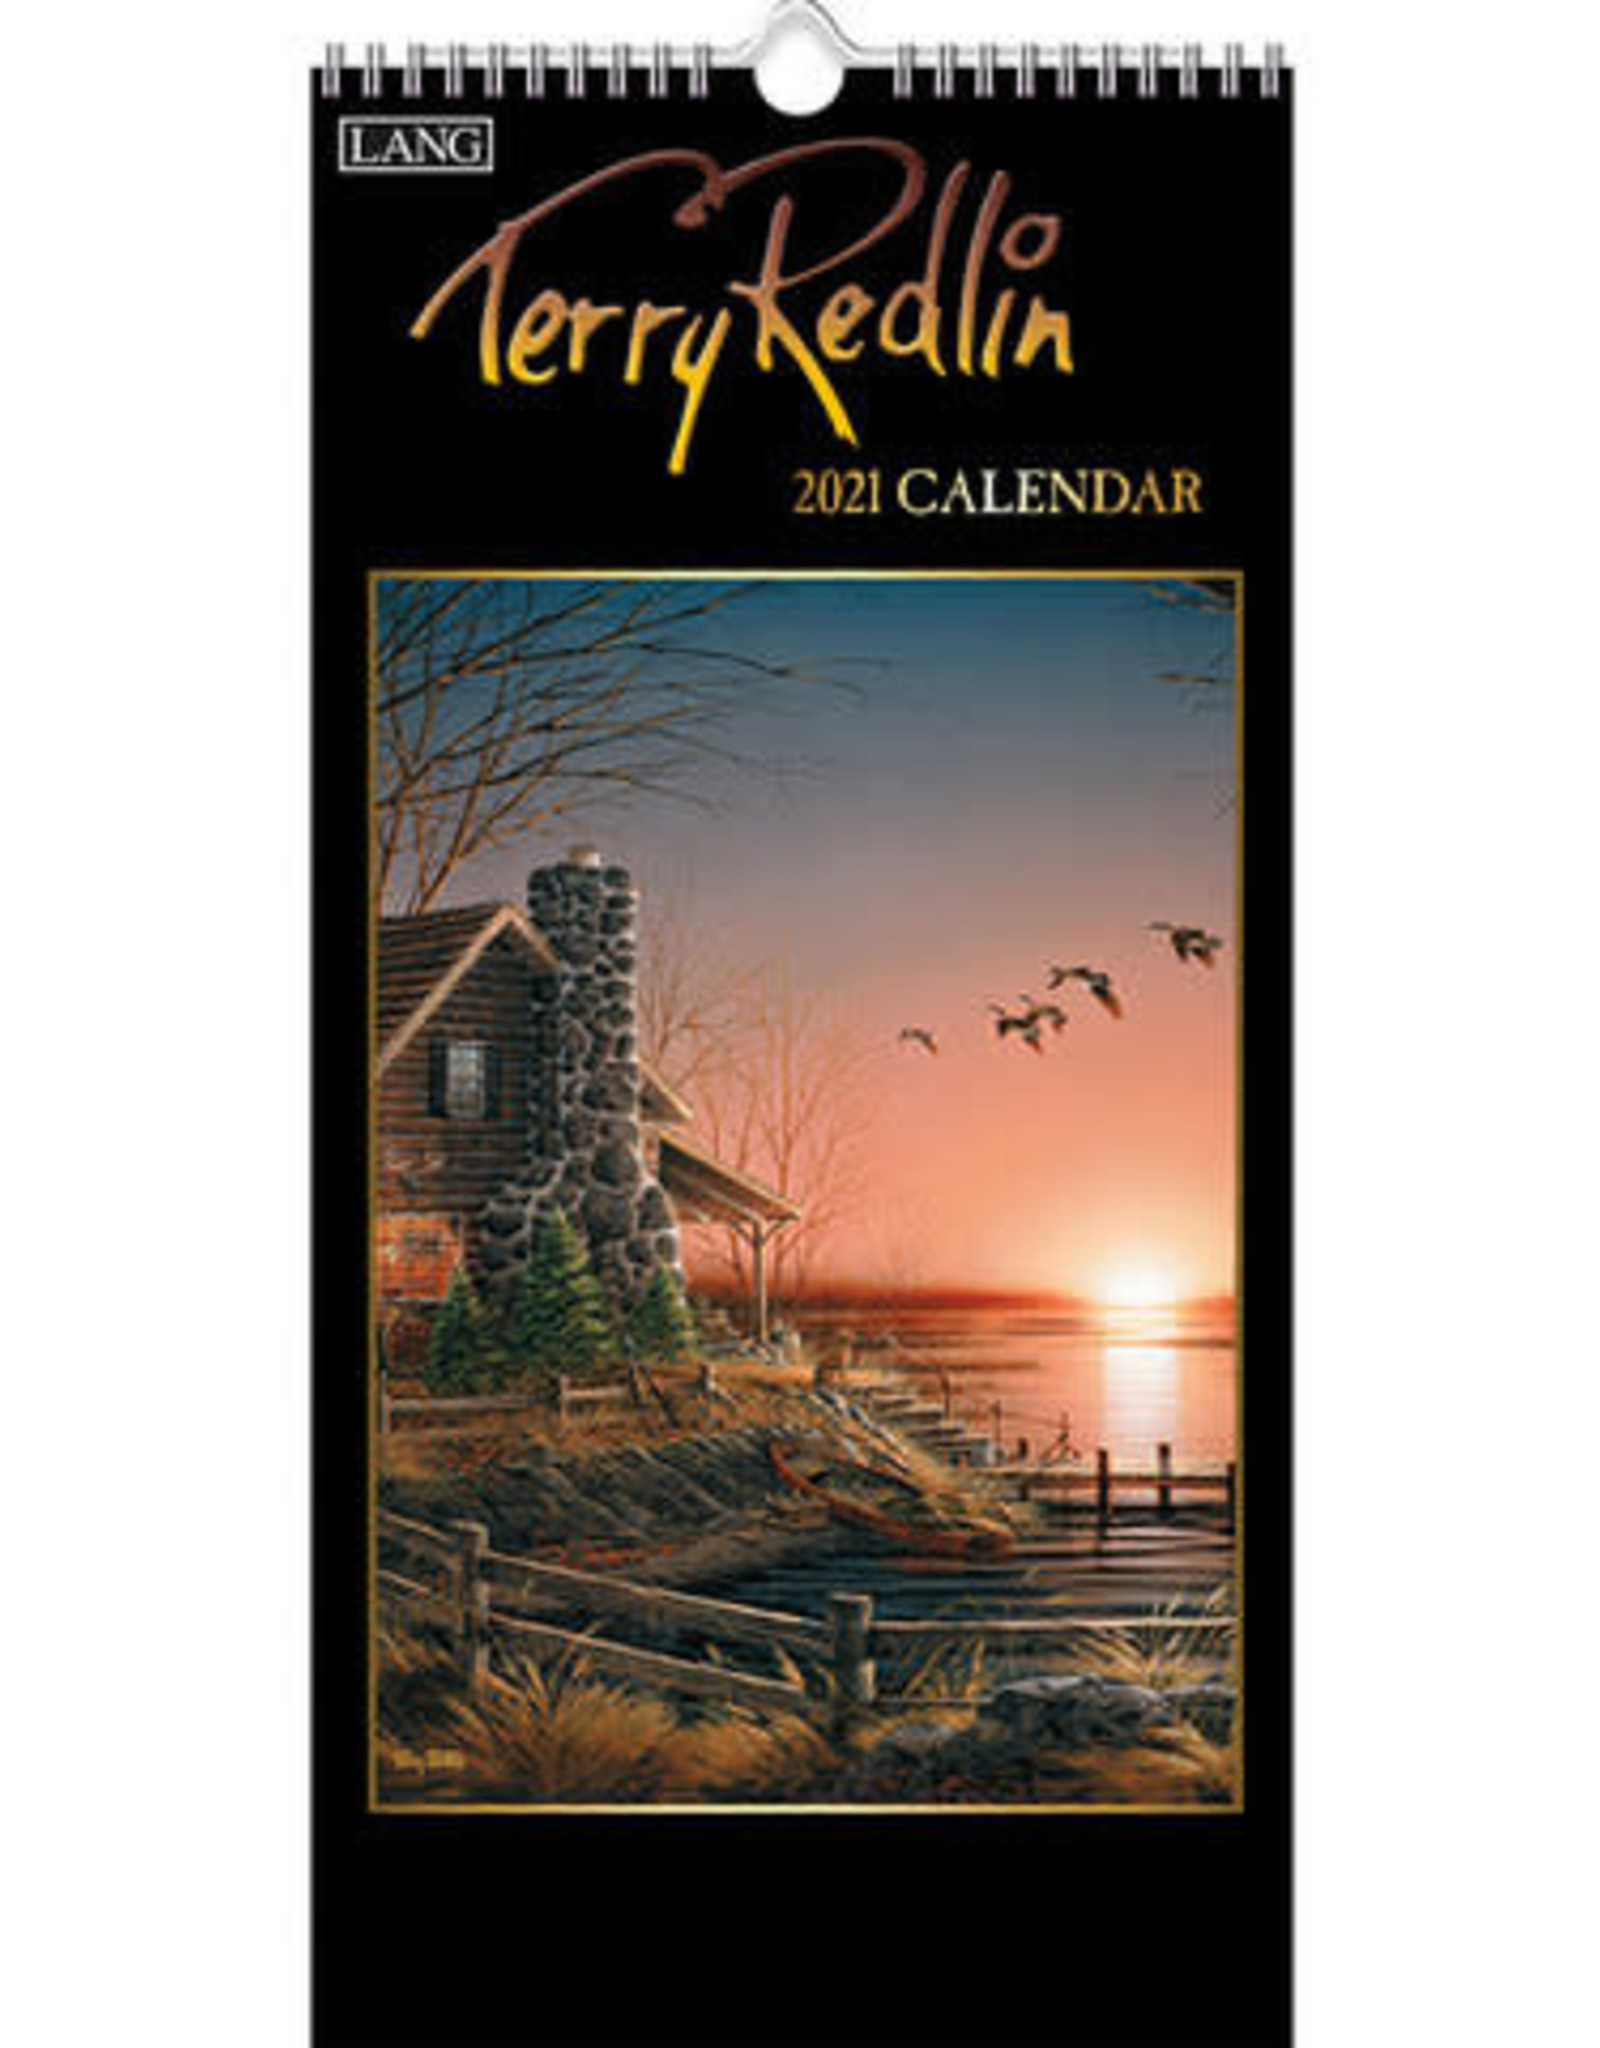 Lang Petit calendrier 2021 Terry Redlin